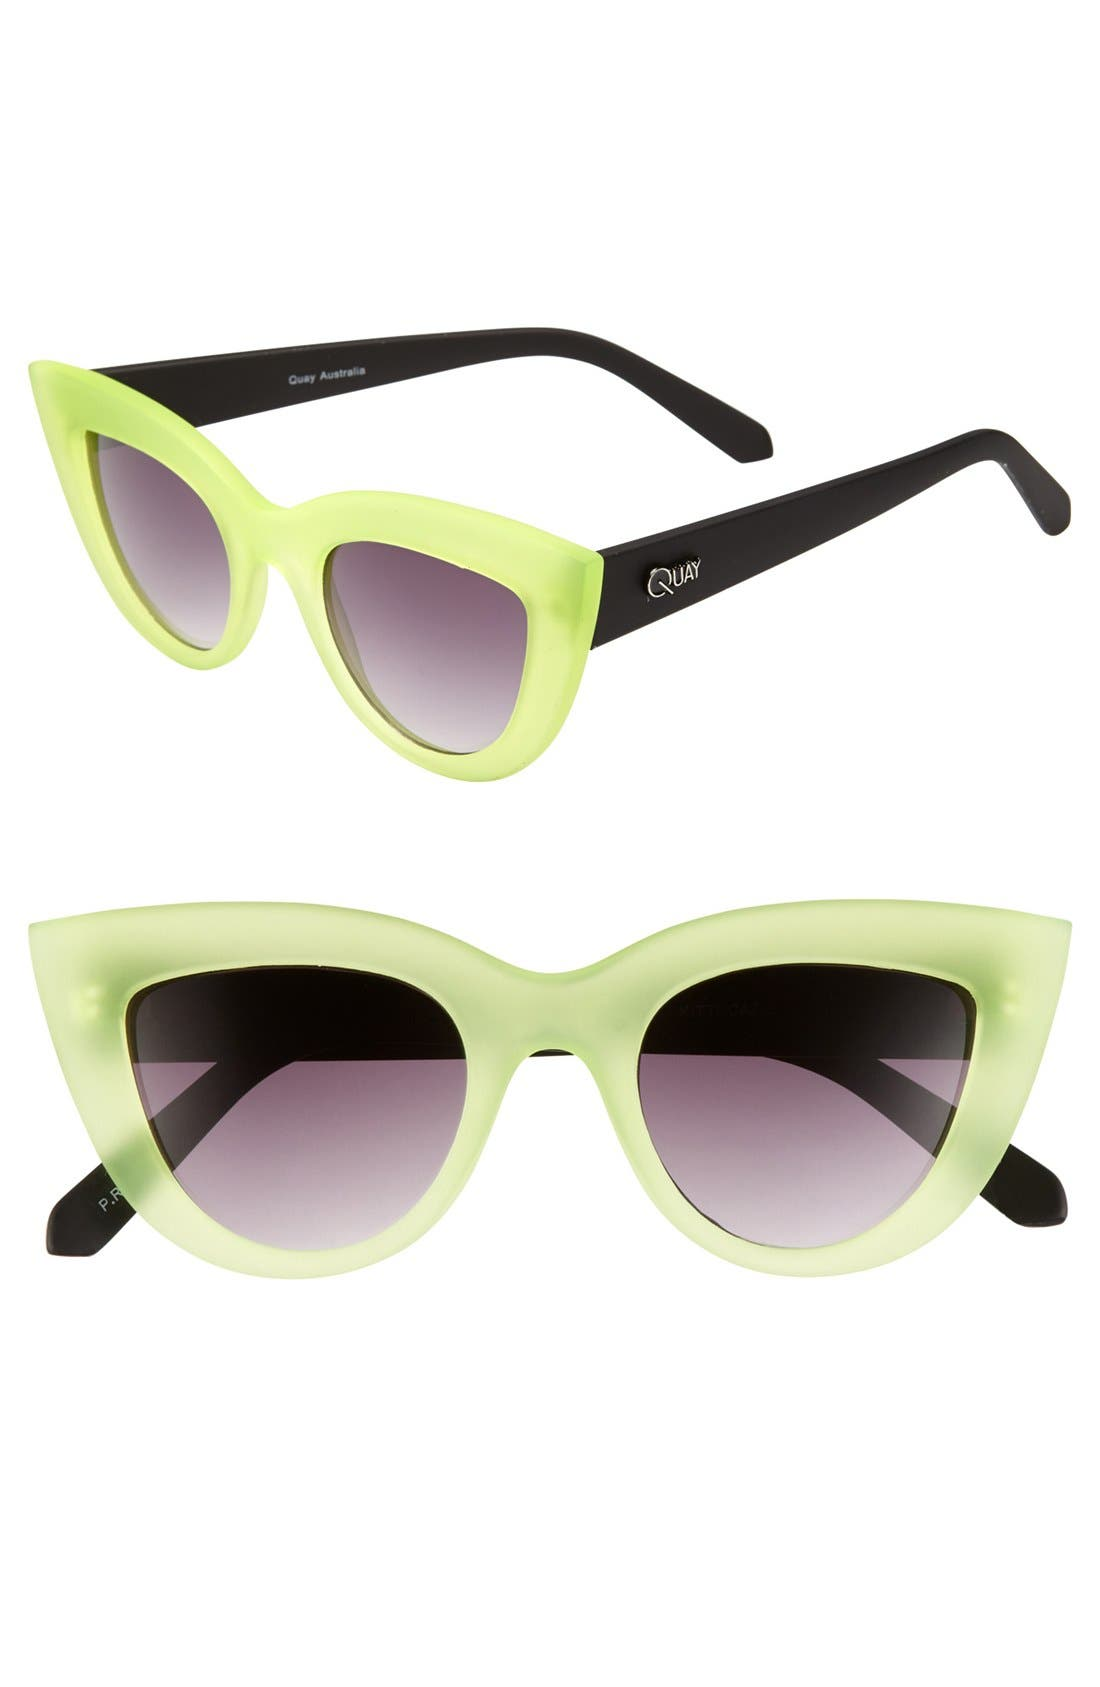 Alternate Image 1 Selected - Quay 'Kitti' Sunglasses